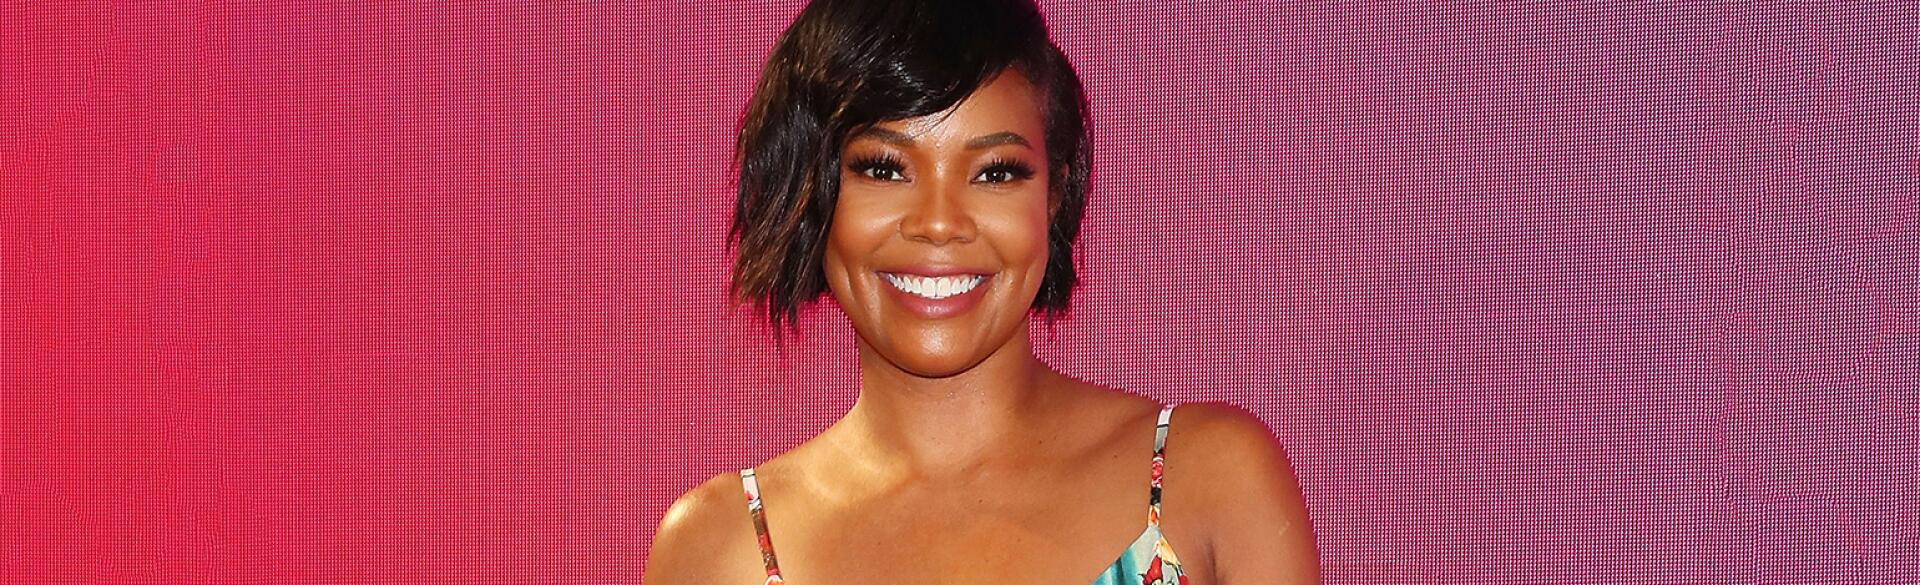 headshot of gabrielle union from #blogher18 creators summit